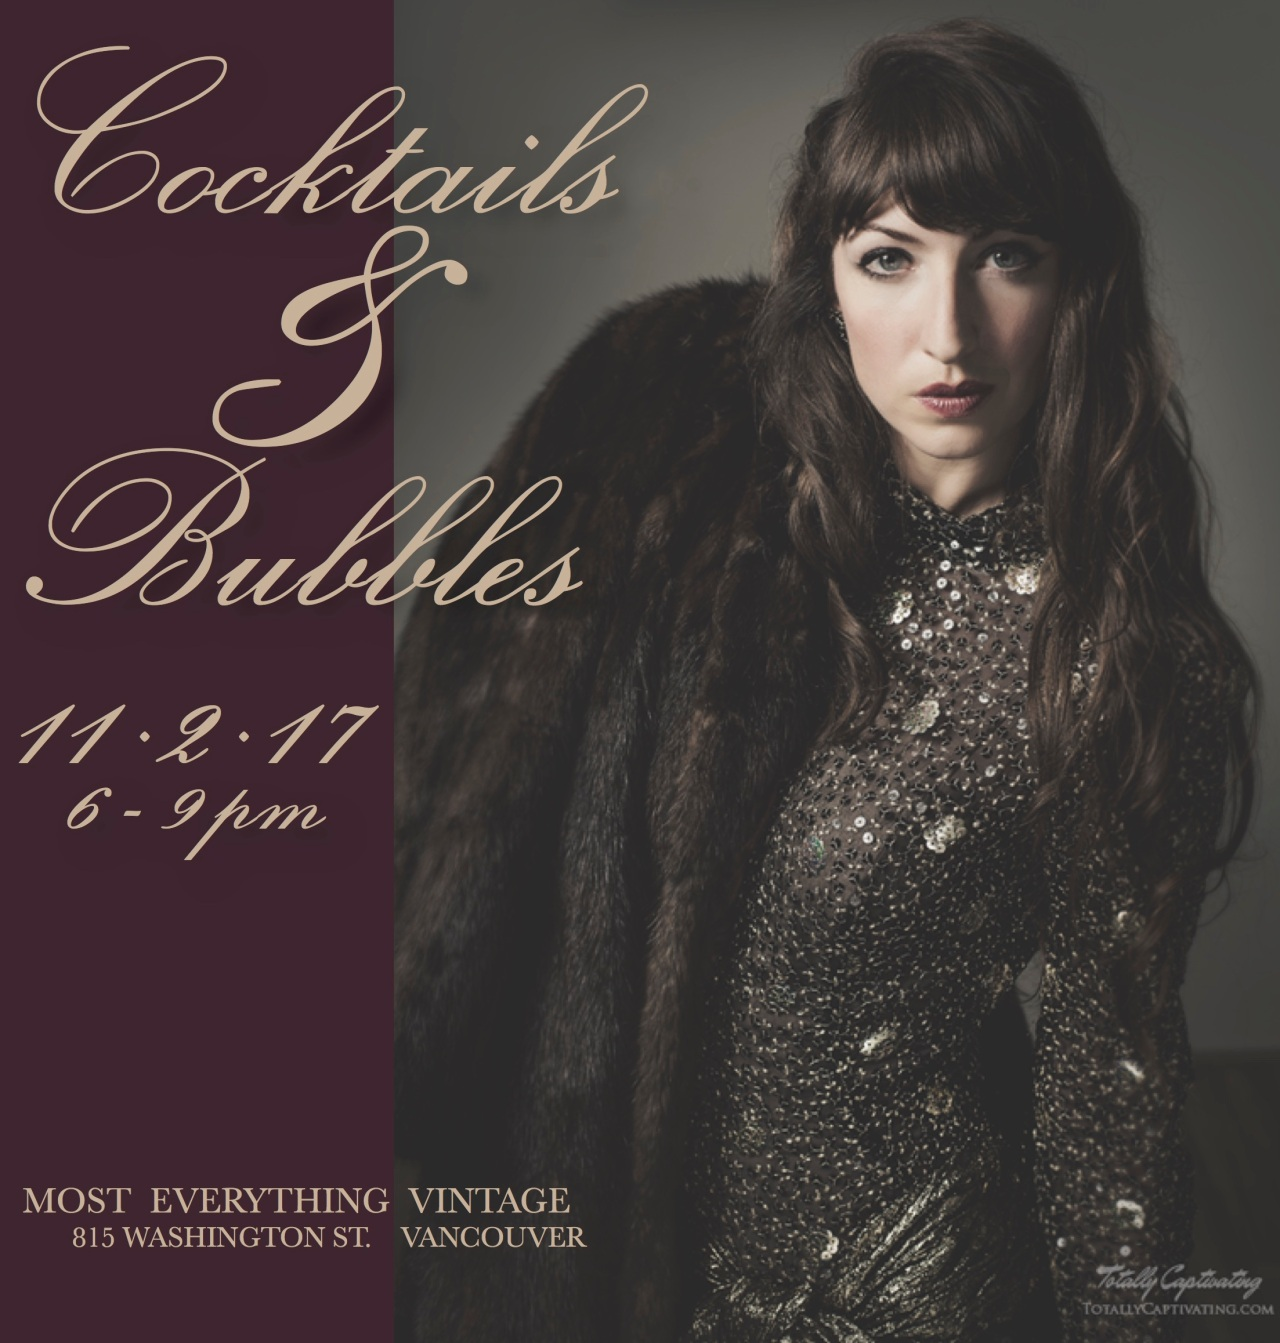 Cocktails and bubbles 17-2